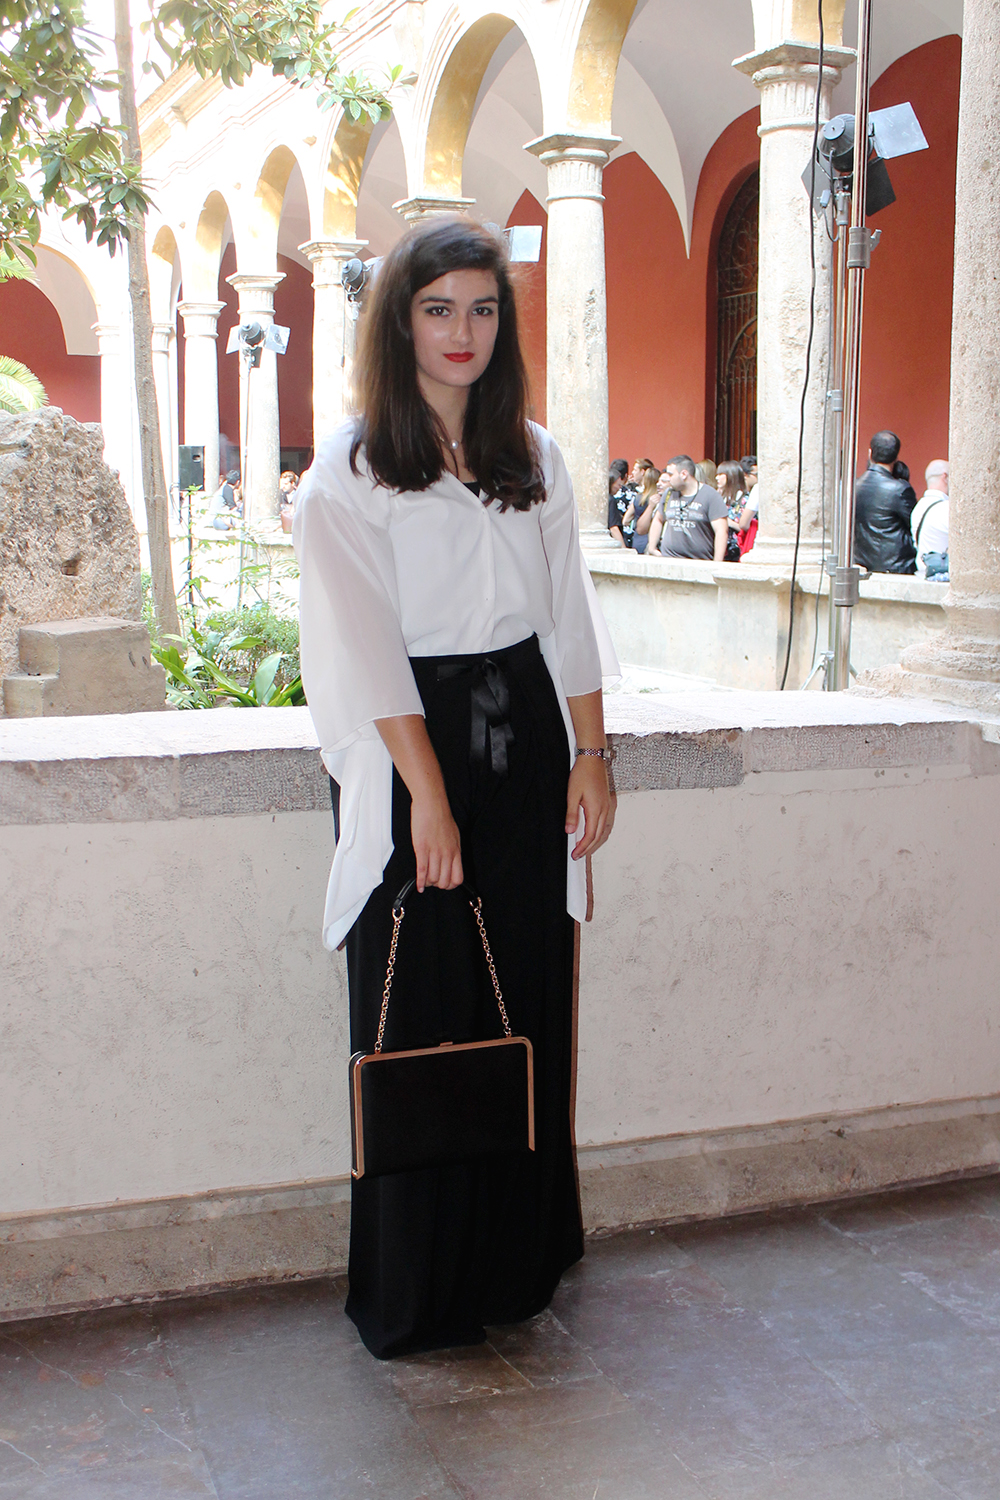 something fashion benavente kimono white valencia fashion week VFW japanese style streetstyle, amanda r. fashionart upv, lodi shoes palazzo pants blogger valencia spain vintage front row